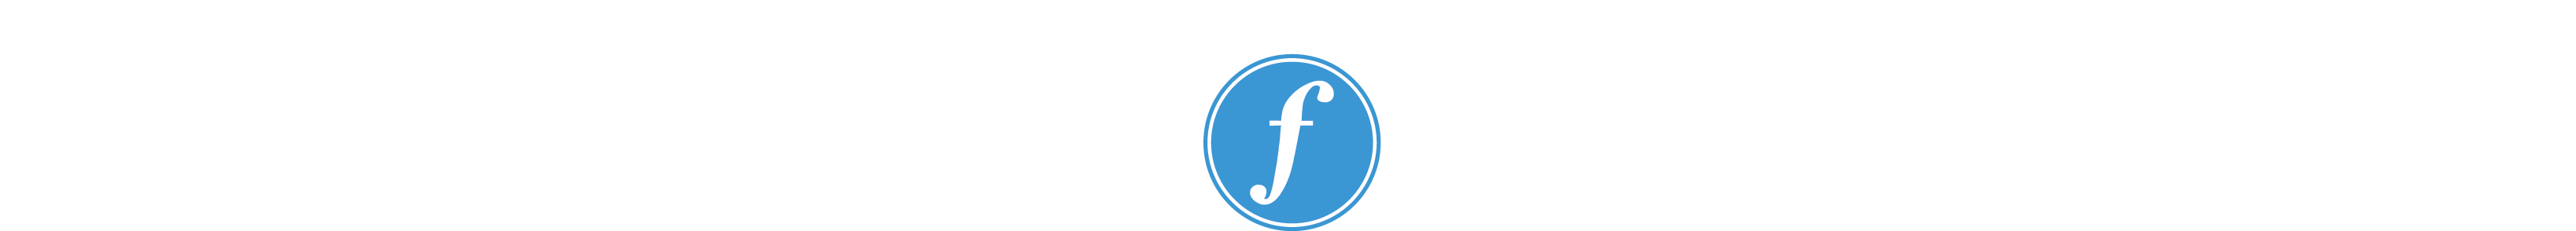 Foshee Multifamily Architecture Logo